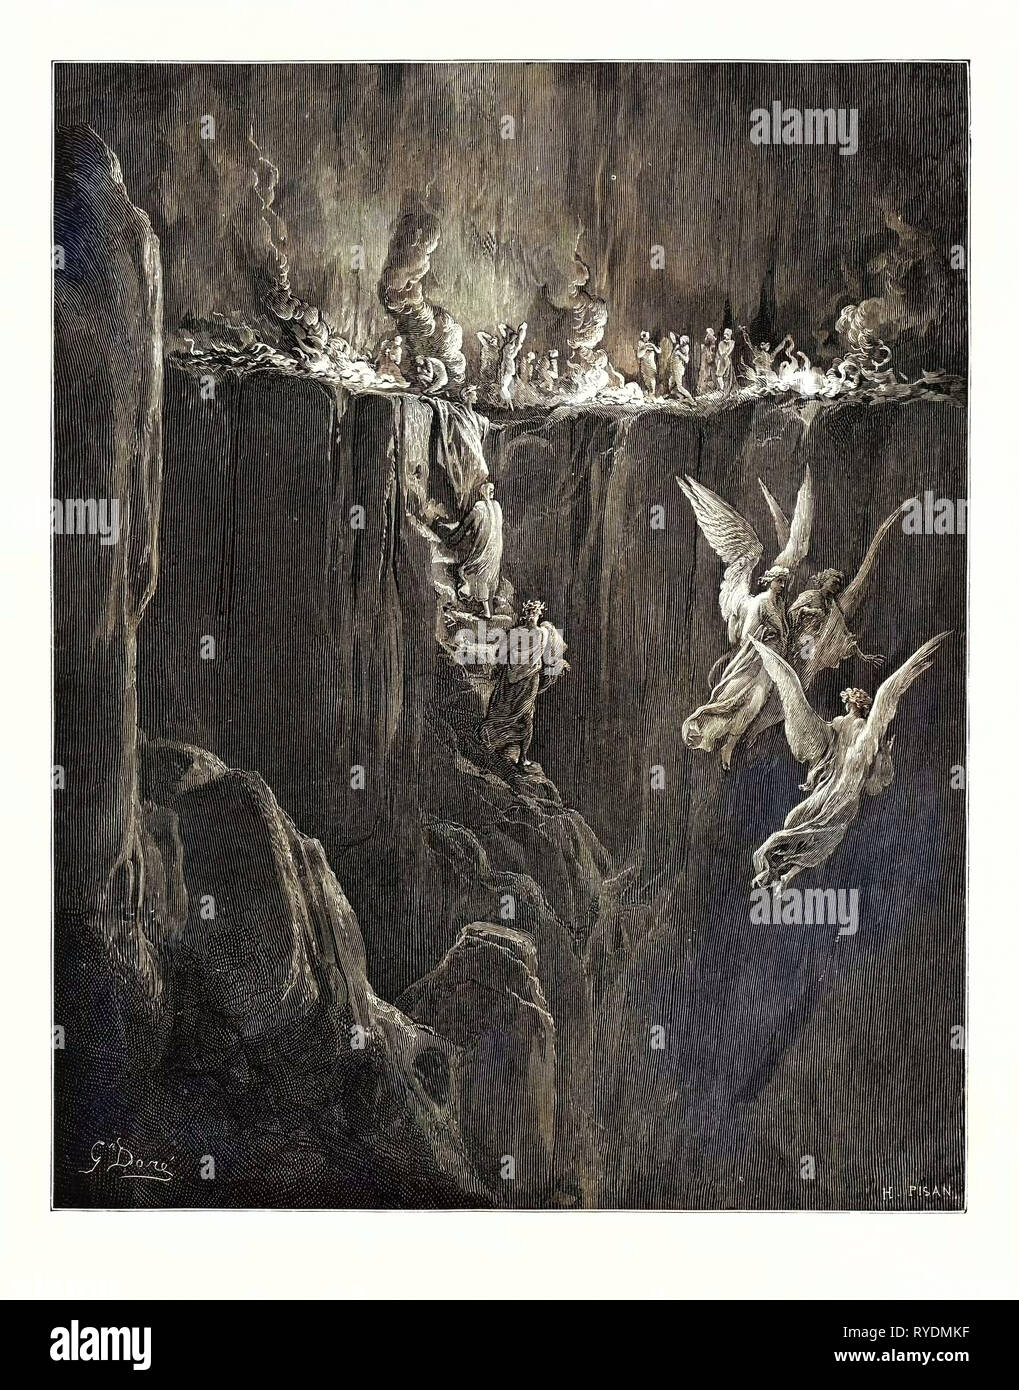 The Perilous Pass on the Eight Cornice of Purgatory, by Gustave Doré, 1832 - 1883, French. Engraving for the Purgatorio or Purgatory by Dante Alighieri. 1870, Art, Artist, Romanticism, Colour, Color Engraving Stock Photo